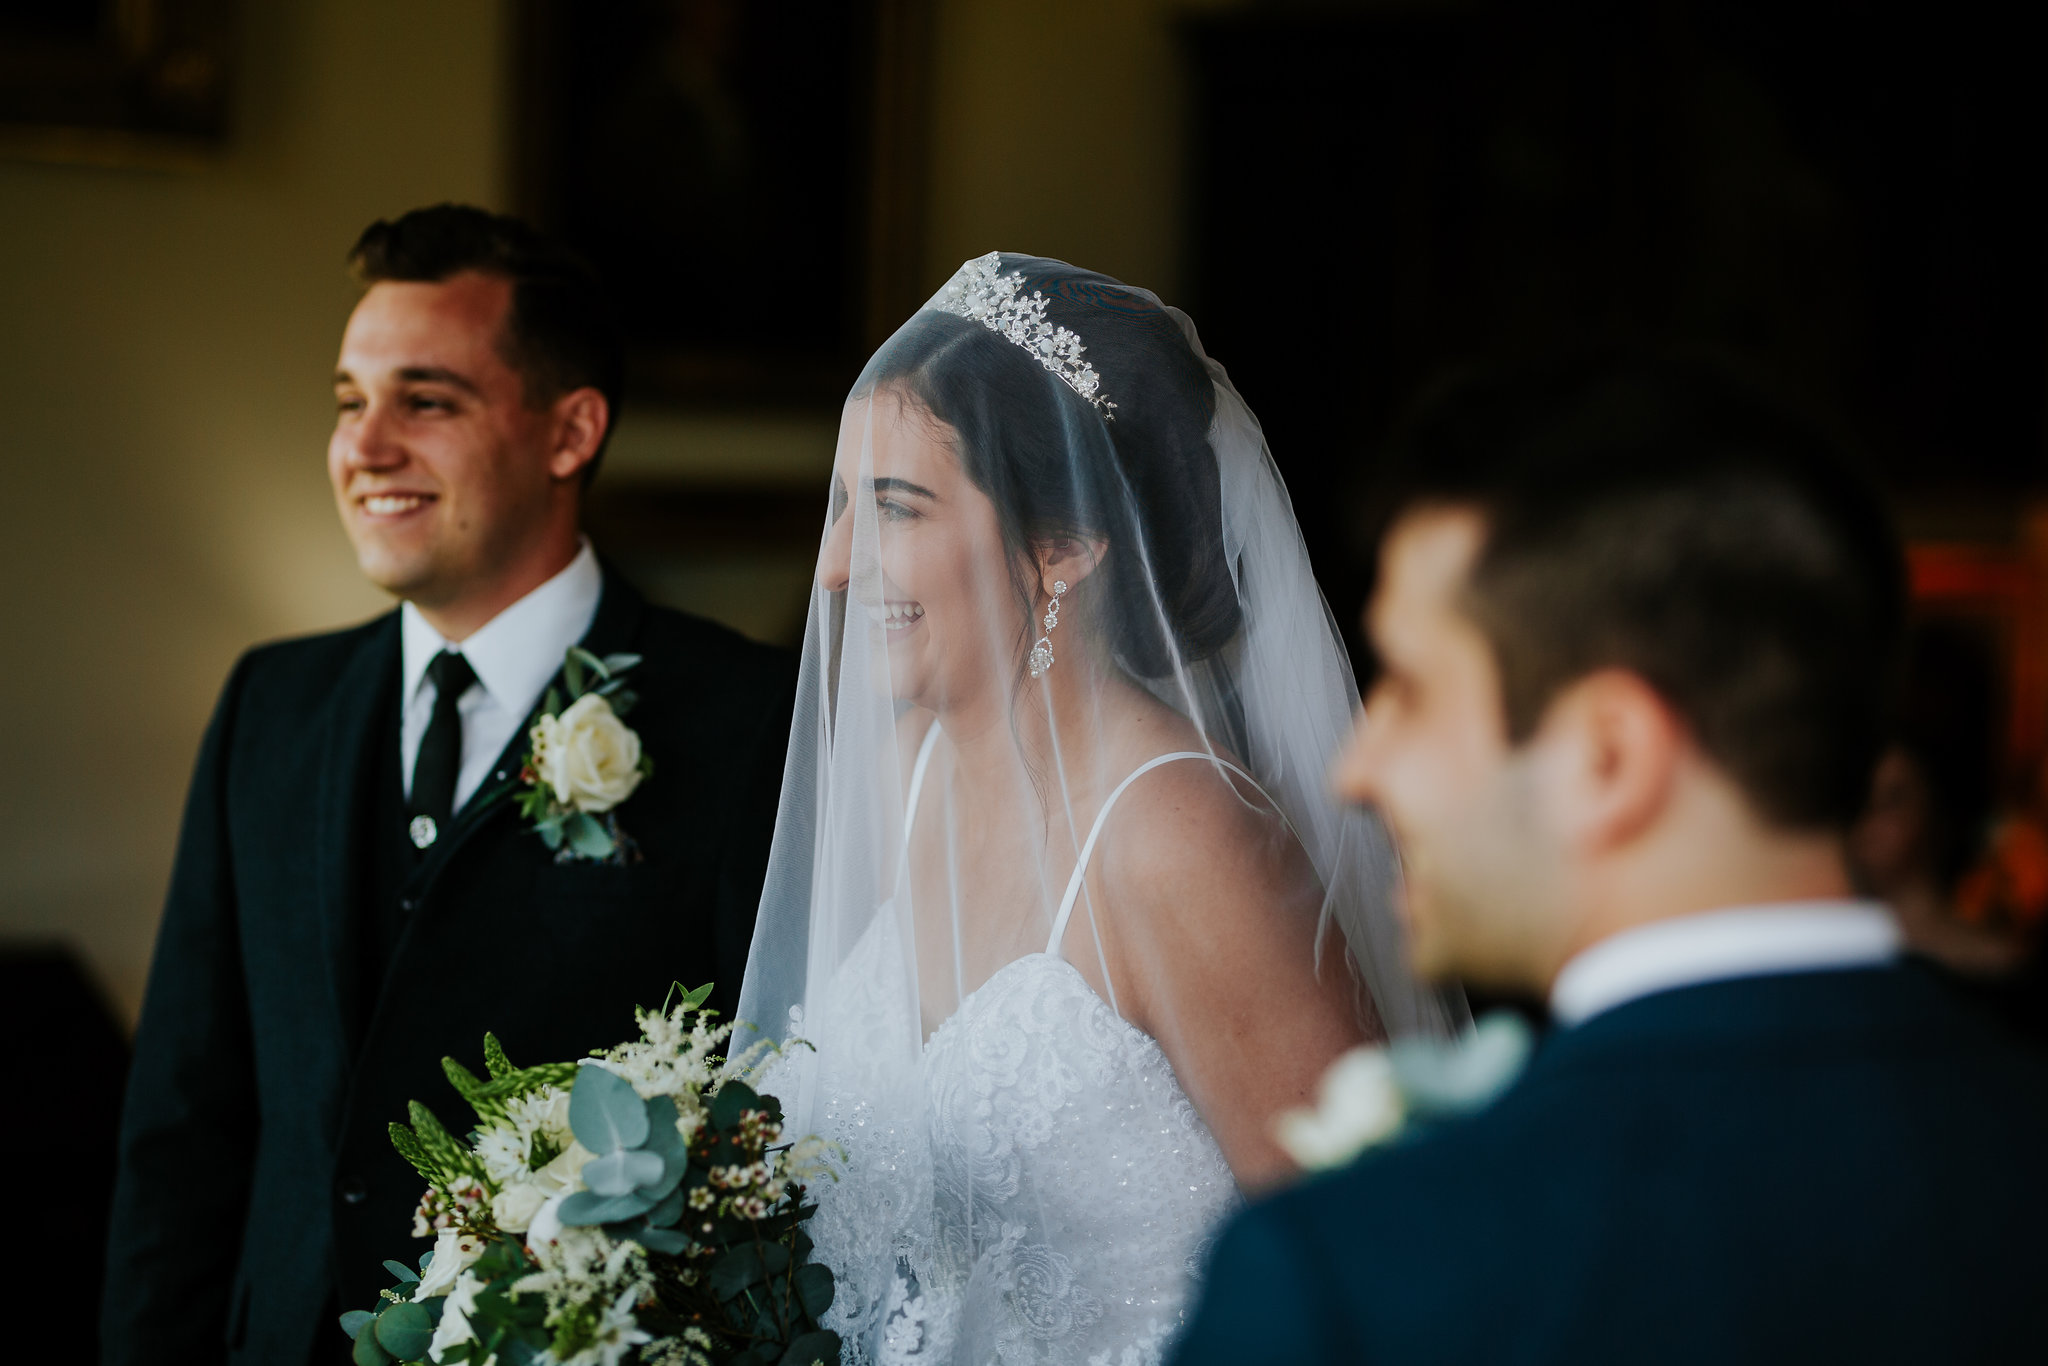 Duns_Castle_wedding_photographer_ross_alexander_photography (46).jpg